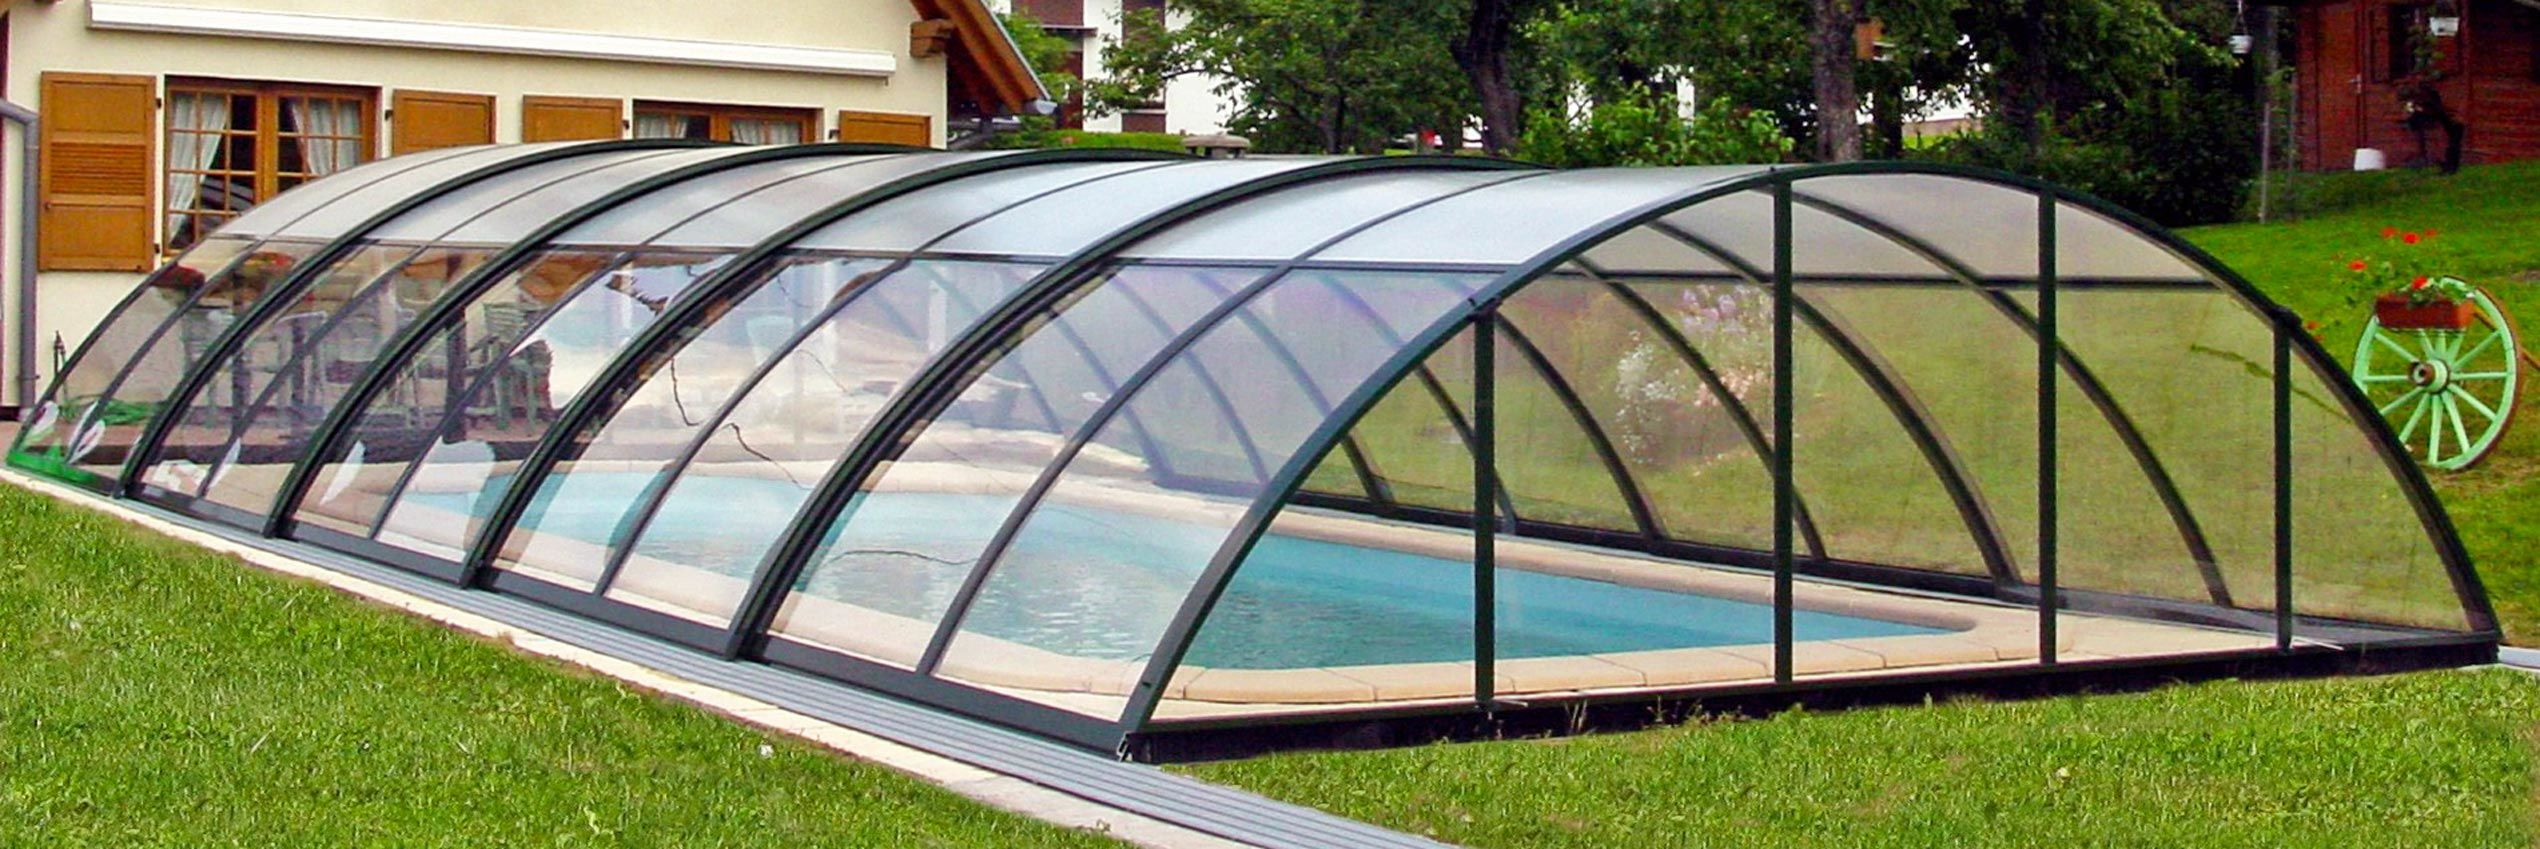 Closed retractable pool enclosure Universe Neo